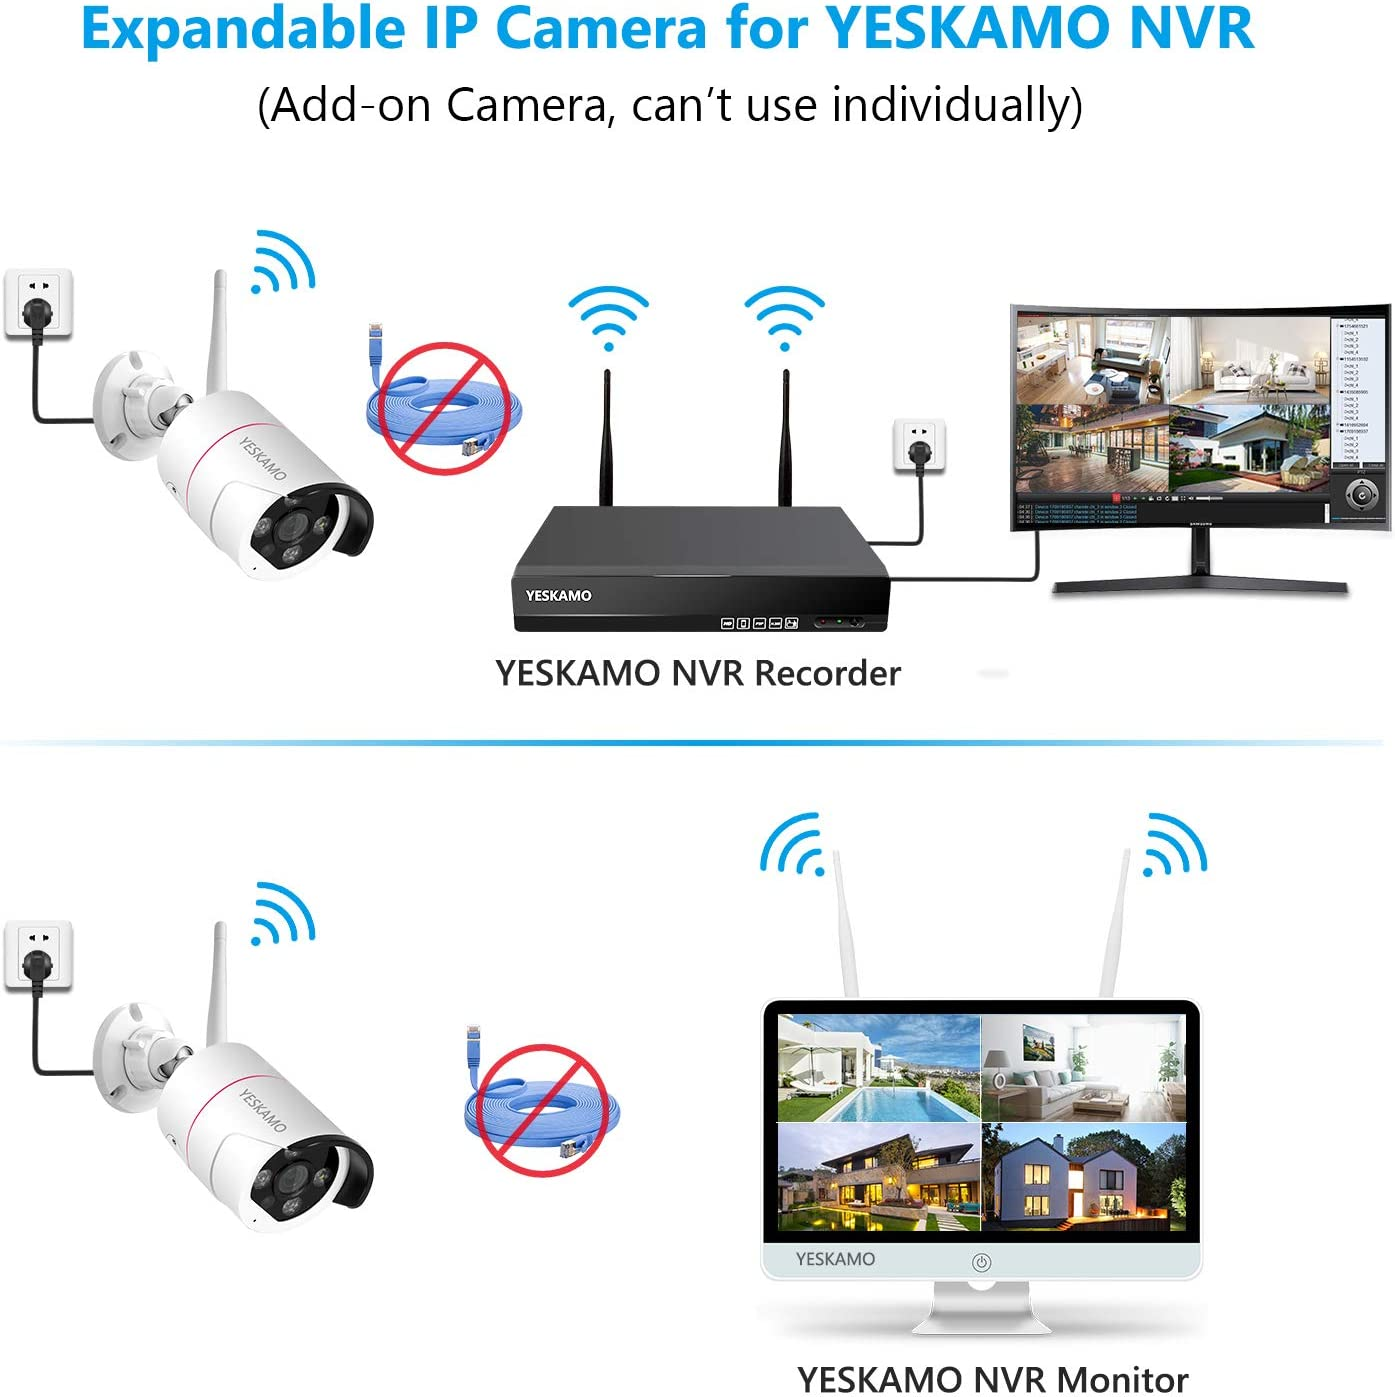 Ultra-HD 3MP WiFi IP Camera for 8CH Expandable NVR System with Siren Alarm 2 Way Talk Power Adapter Not Included Add-on Floodlight Security Camera for YESKAMO NVR with AI Human Detection